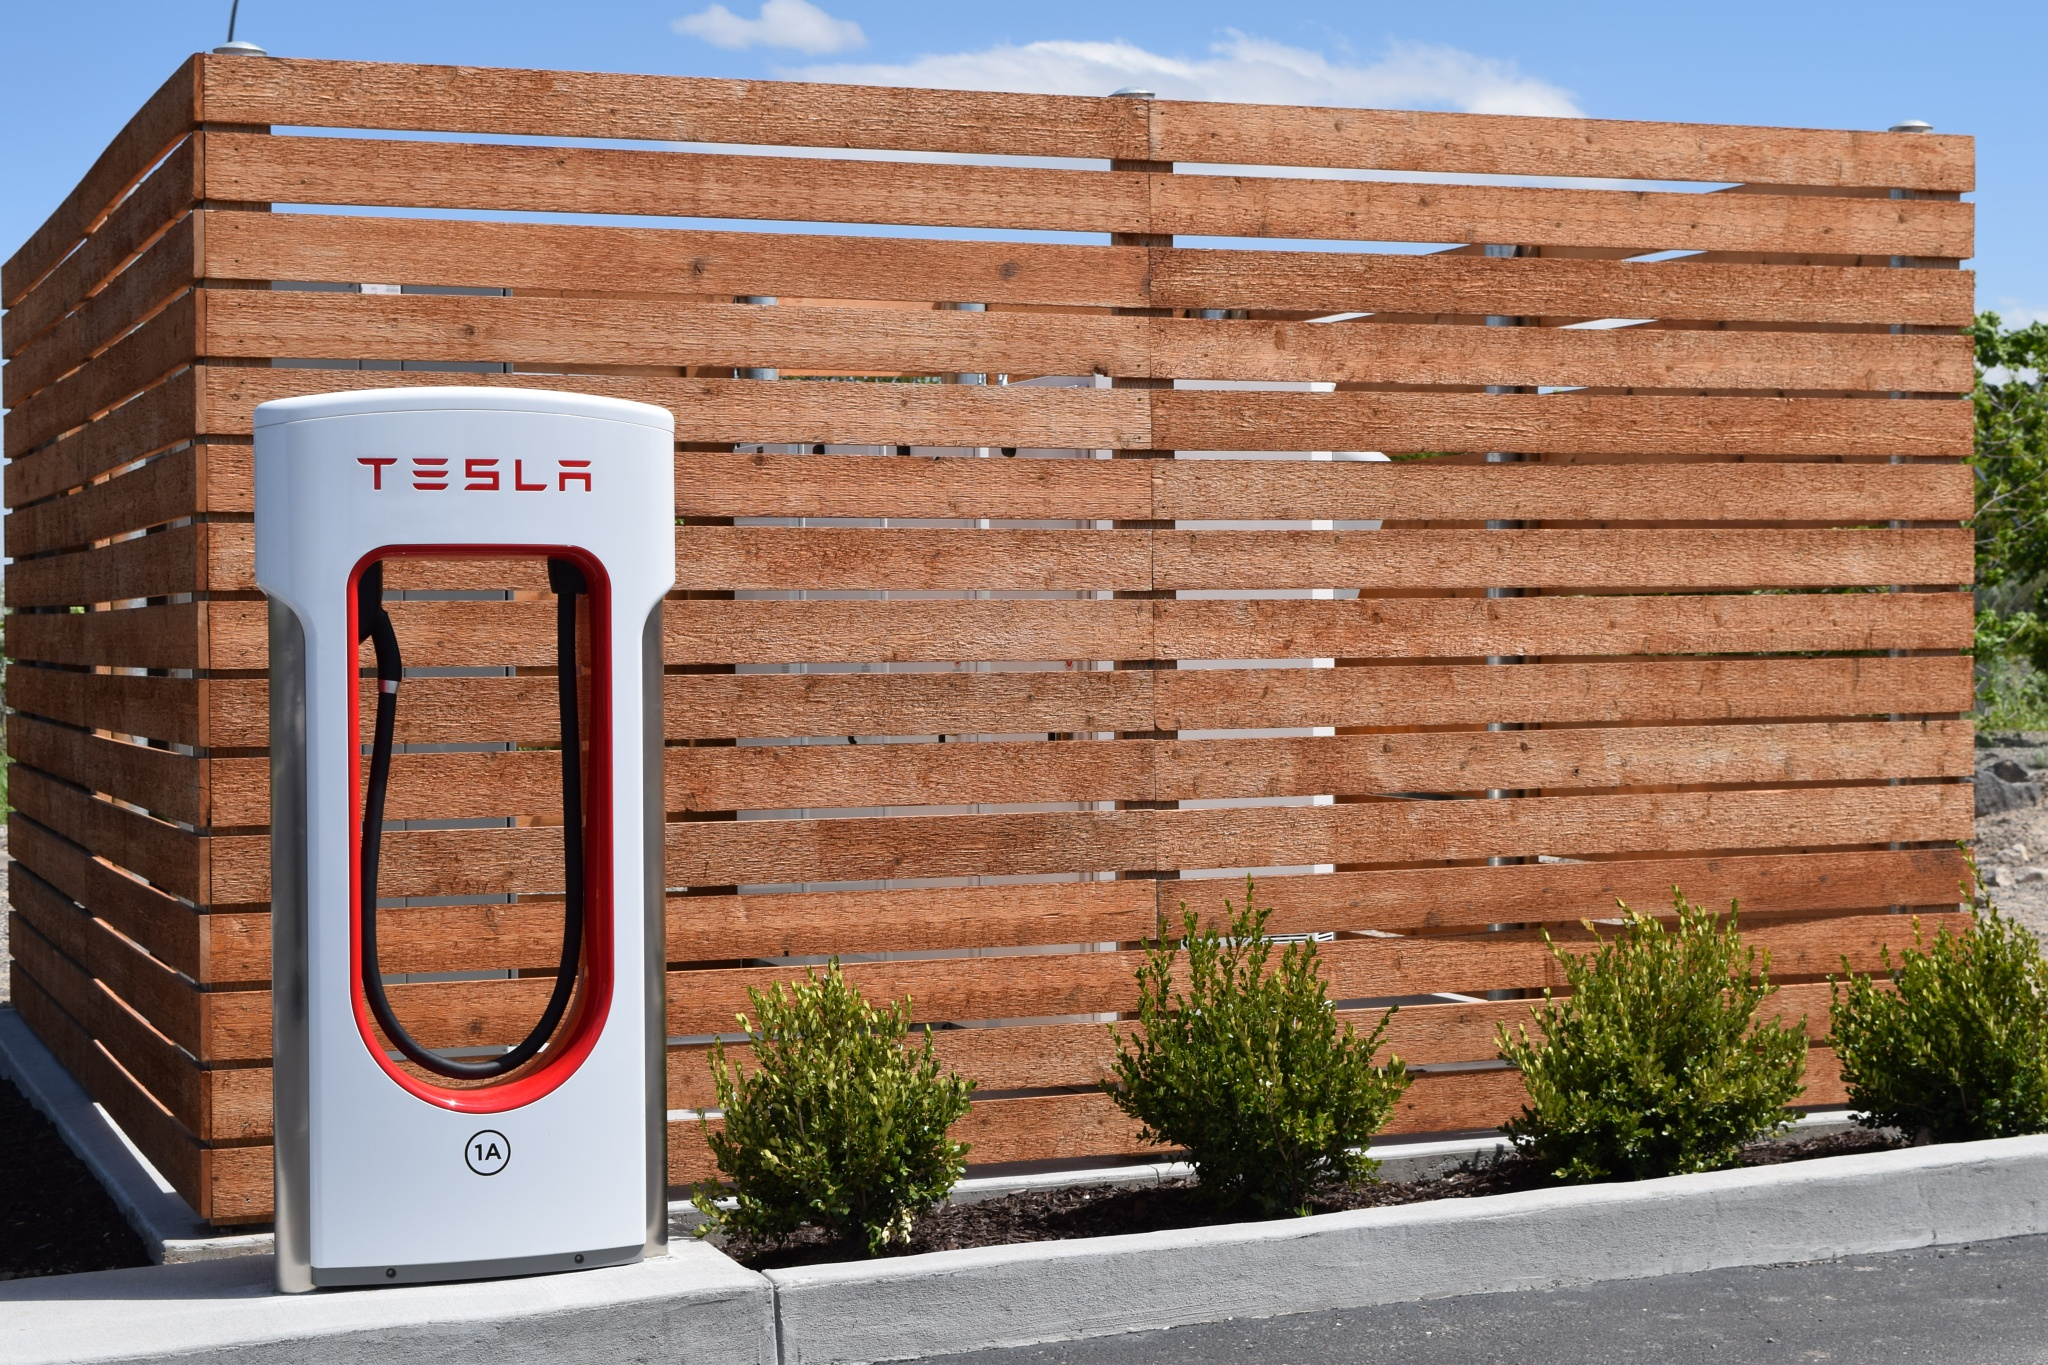 Tesla Charging Station by Tom Young